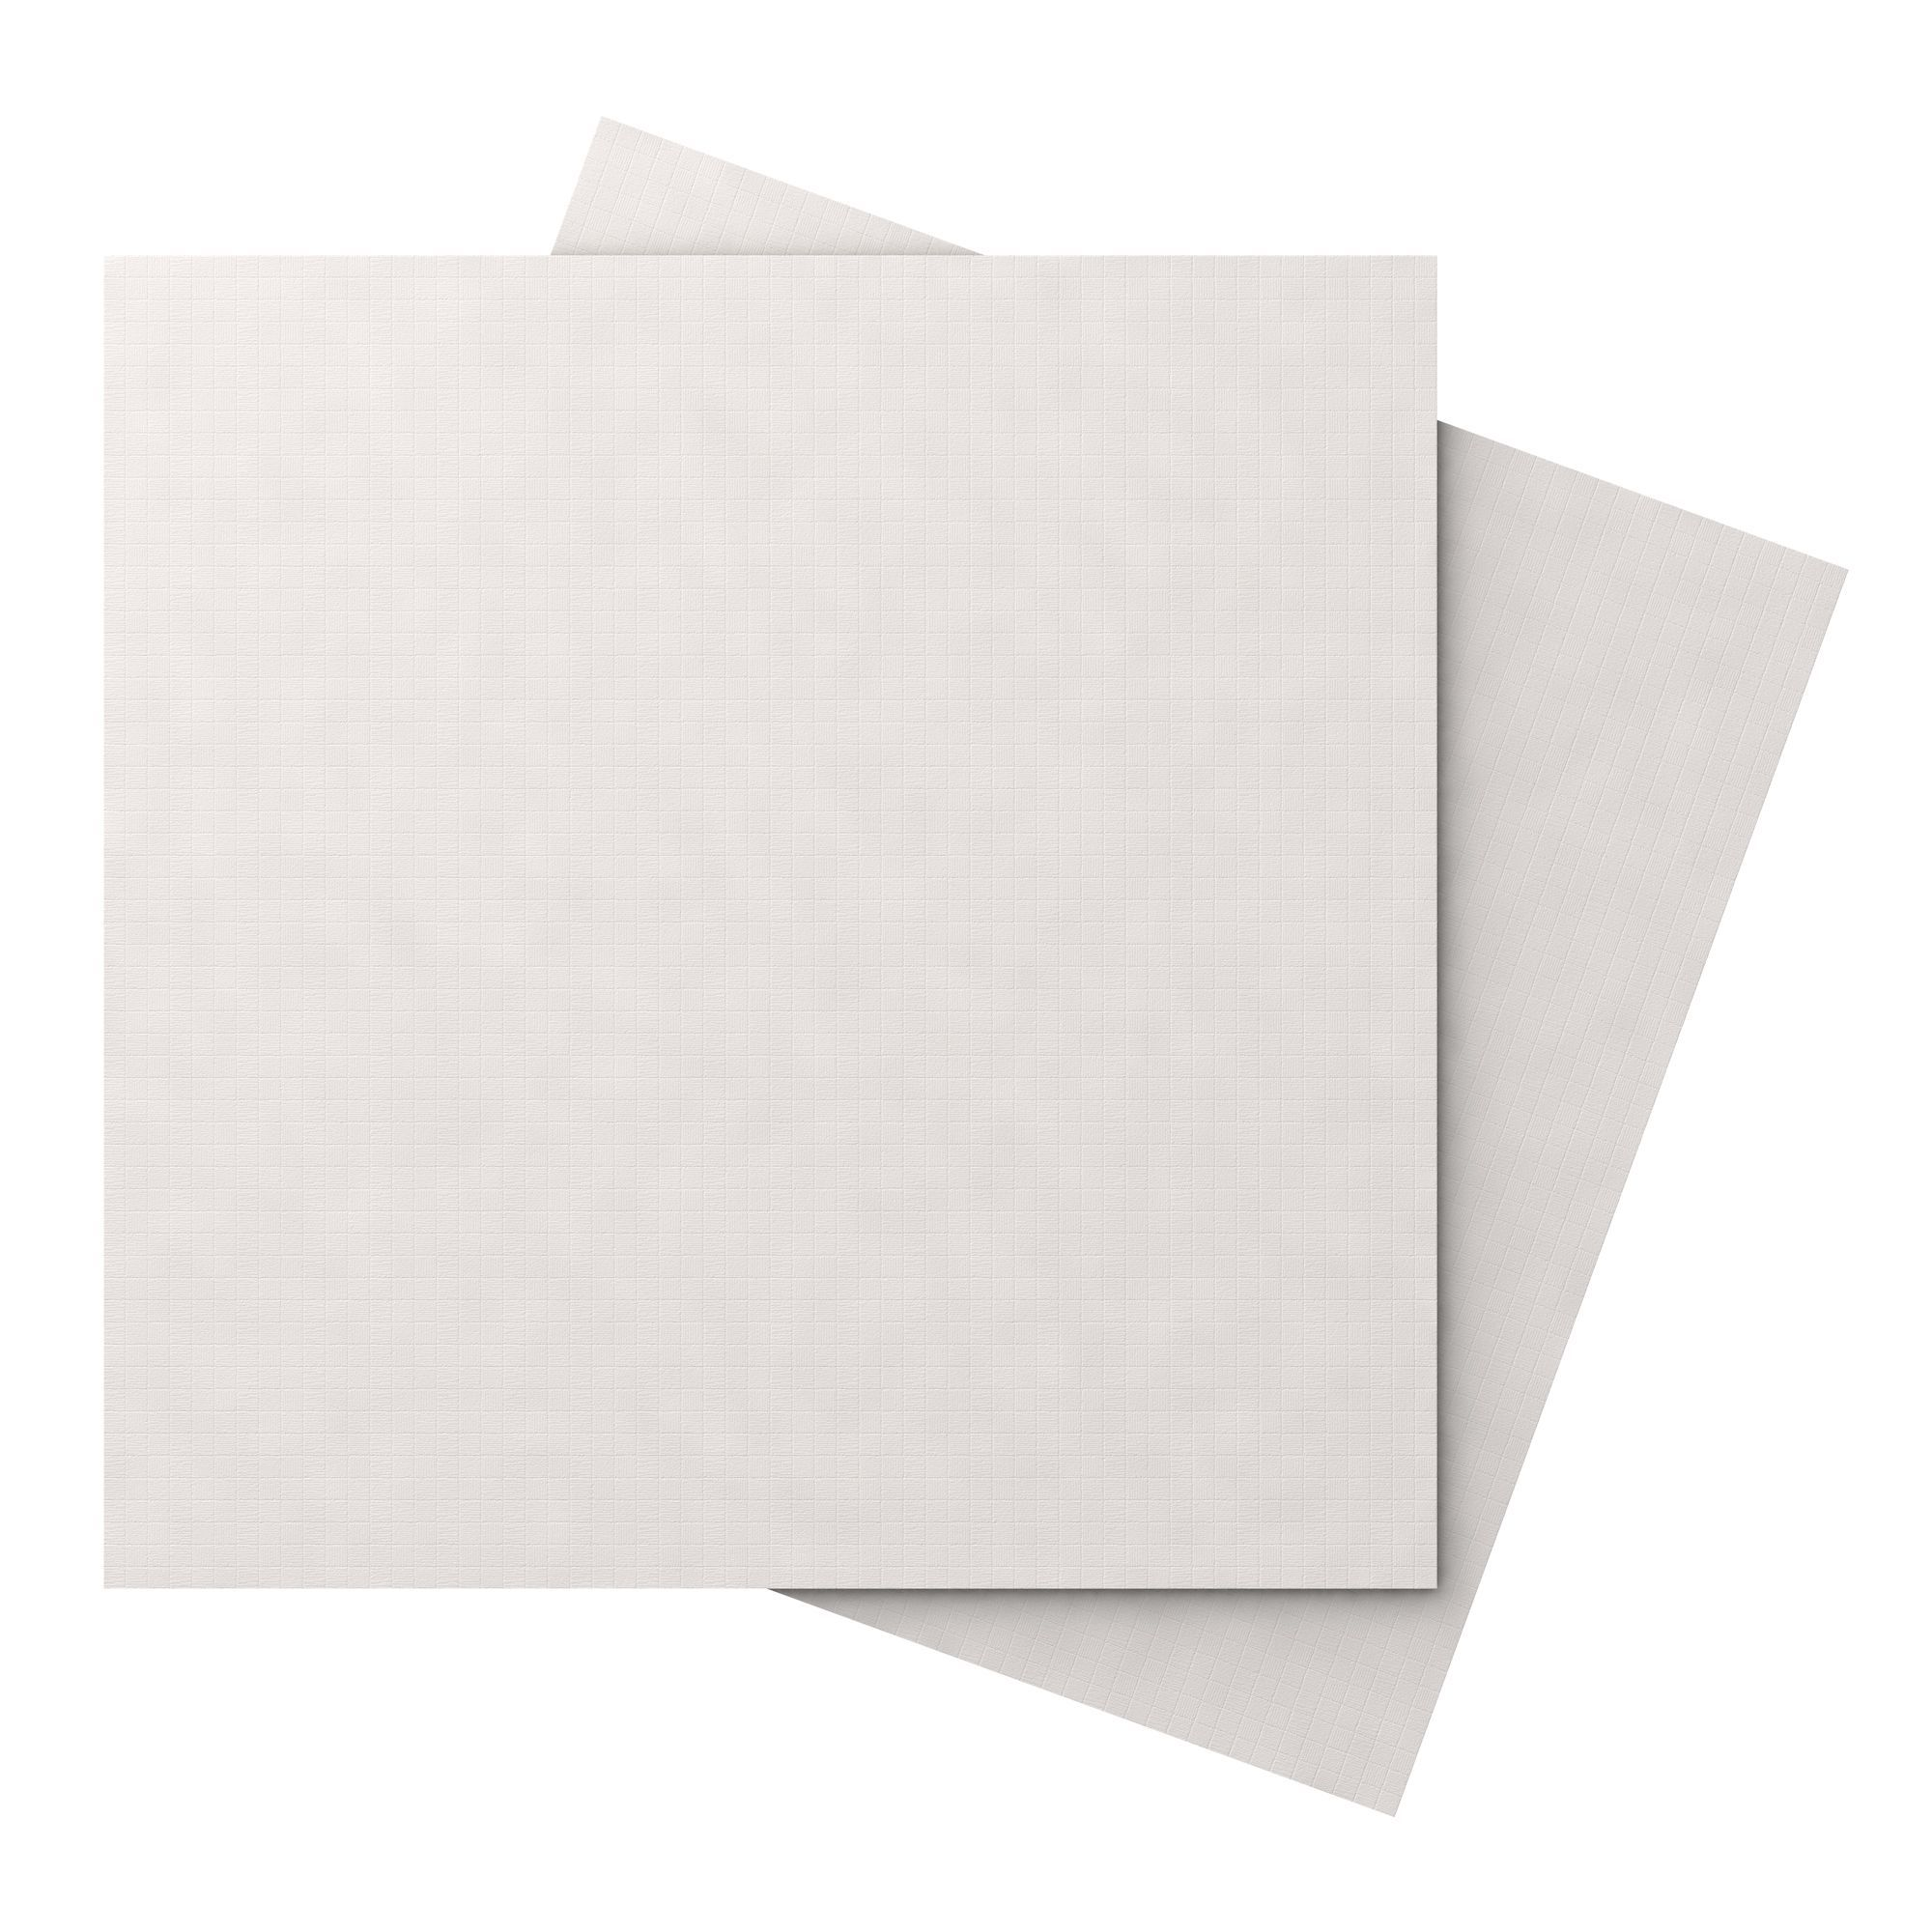 Soho white porcelain floor tile pack of 3 l600mm w600mm soho white porcelain floor tile pack of 3 l600mm w600mm departments diy at bq dailygadgetfo Choice Image